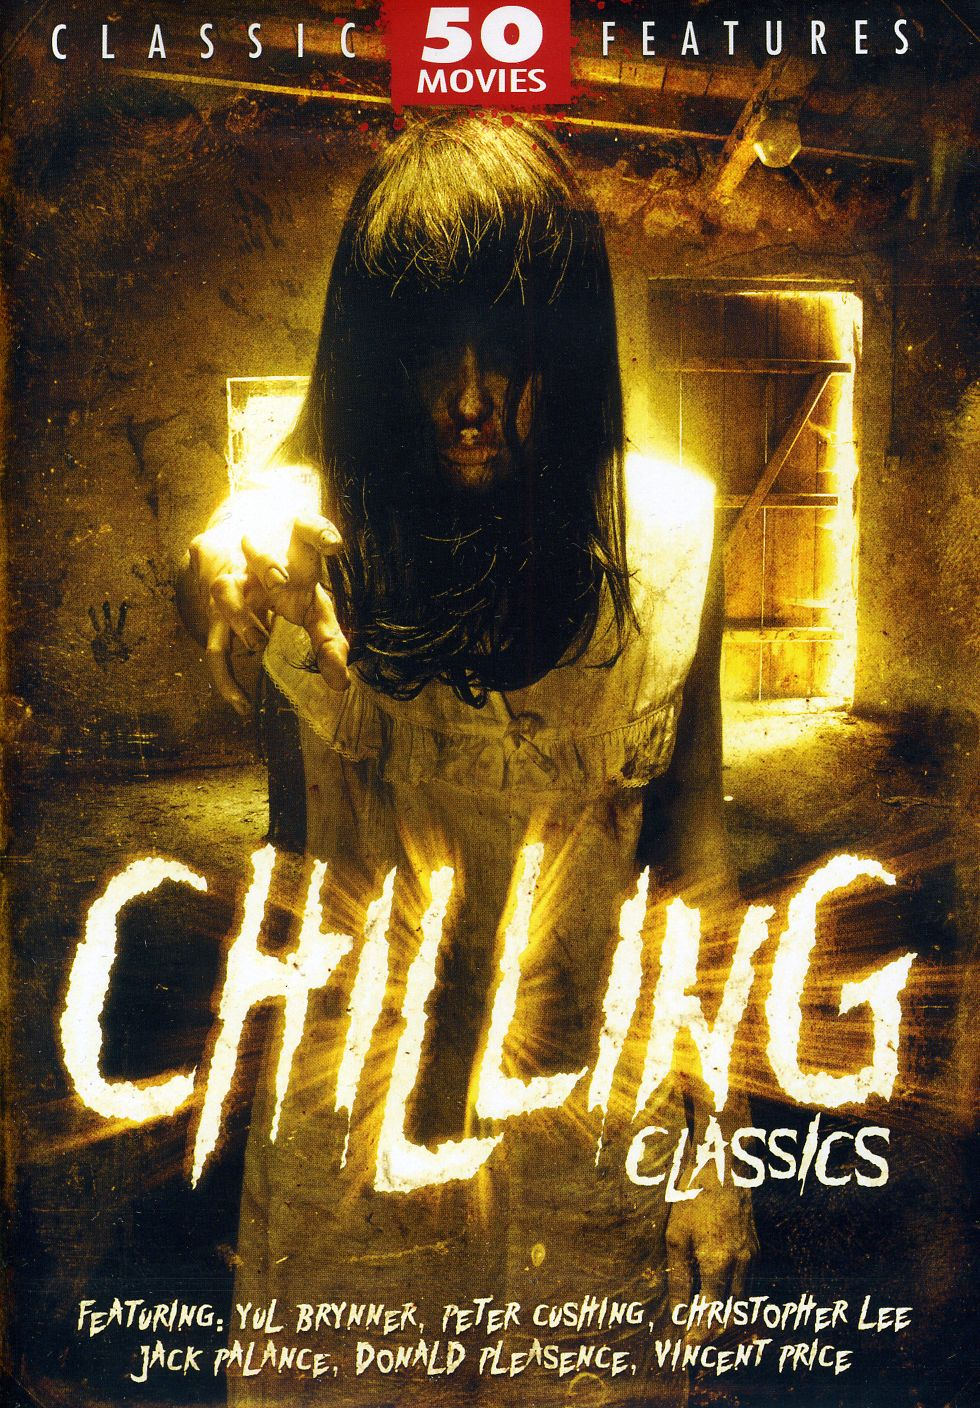 Chilling Classics: 50 Movie Pack (DVD)